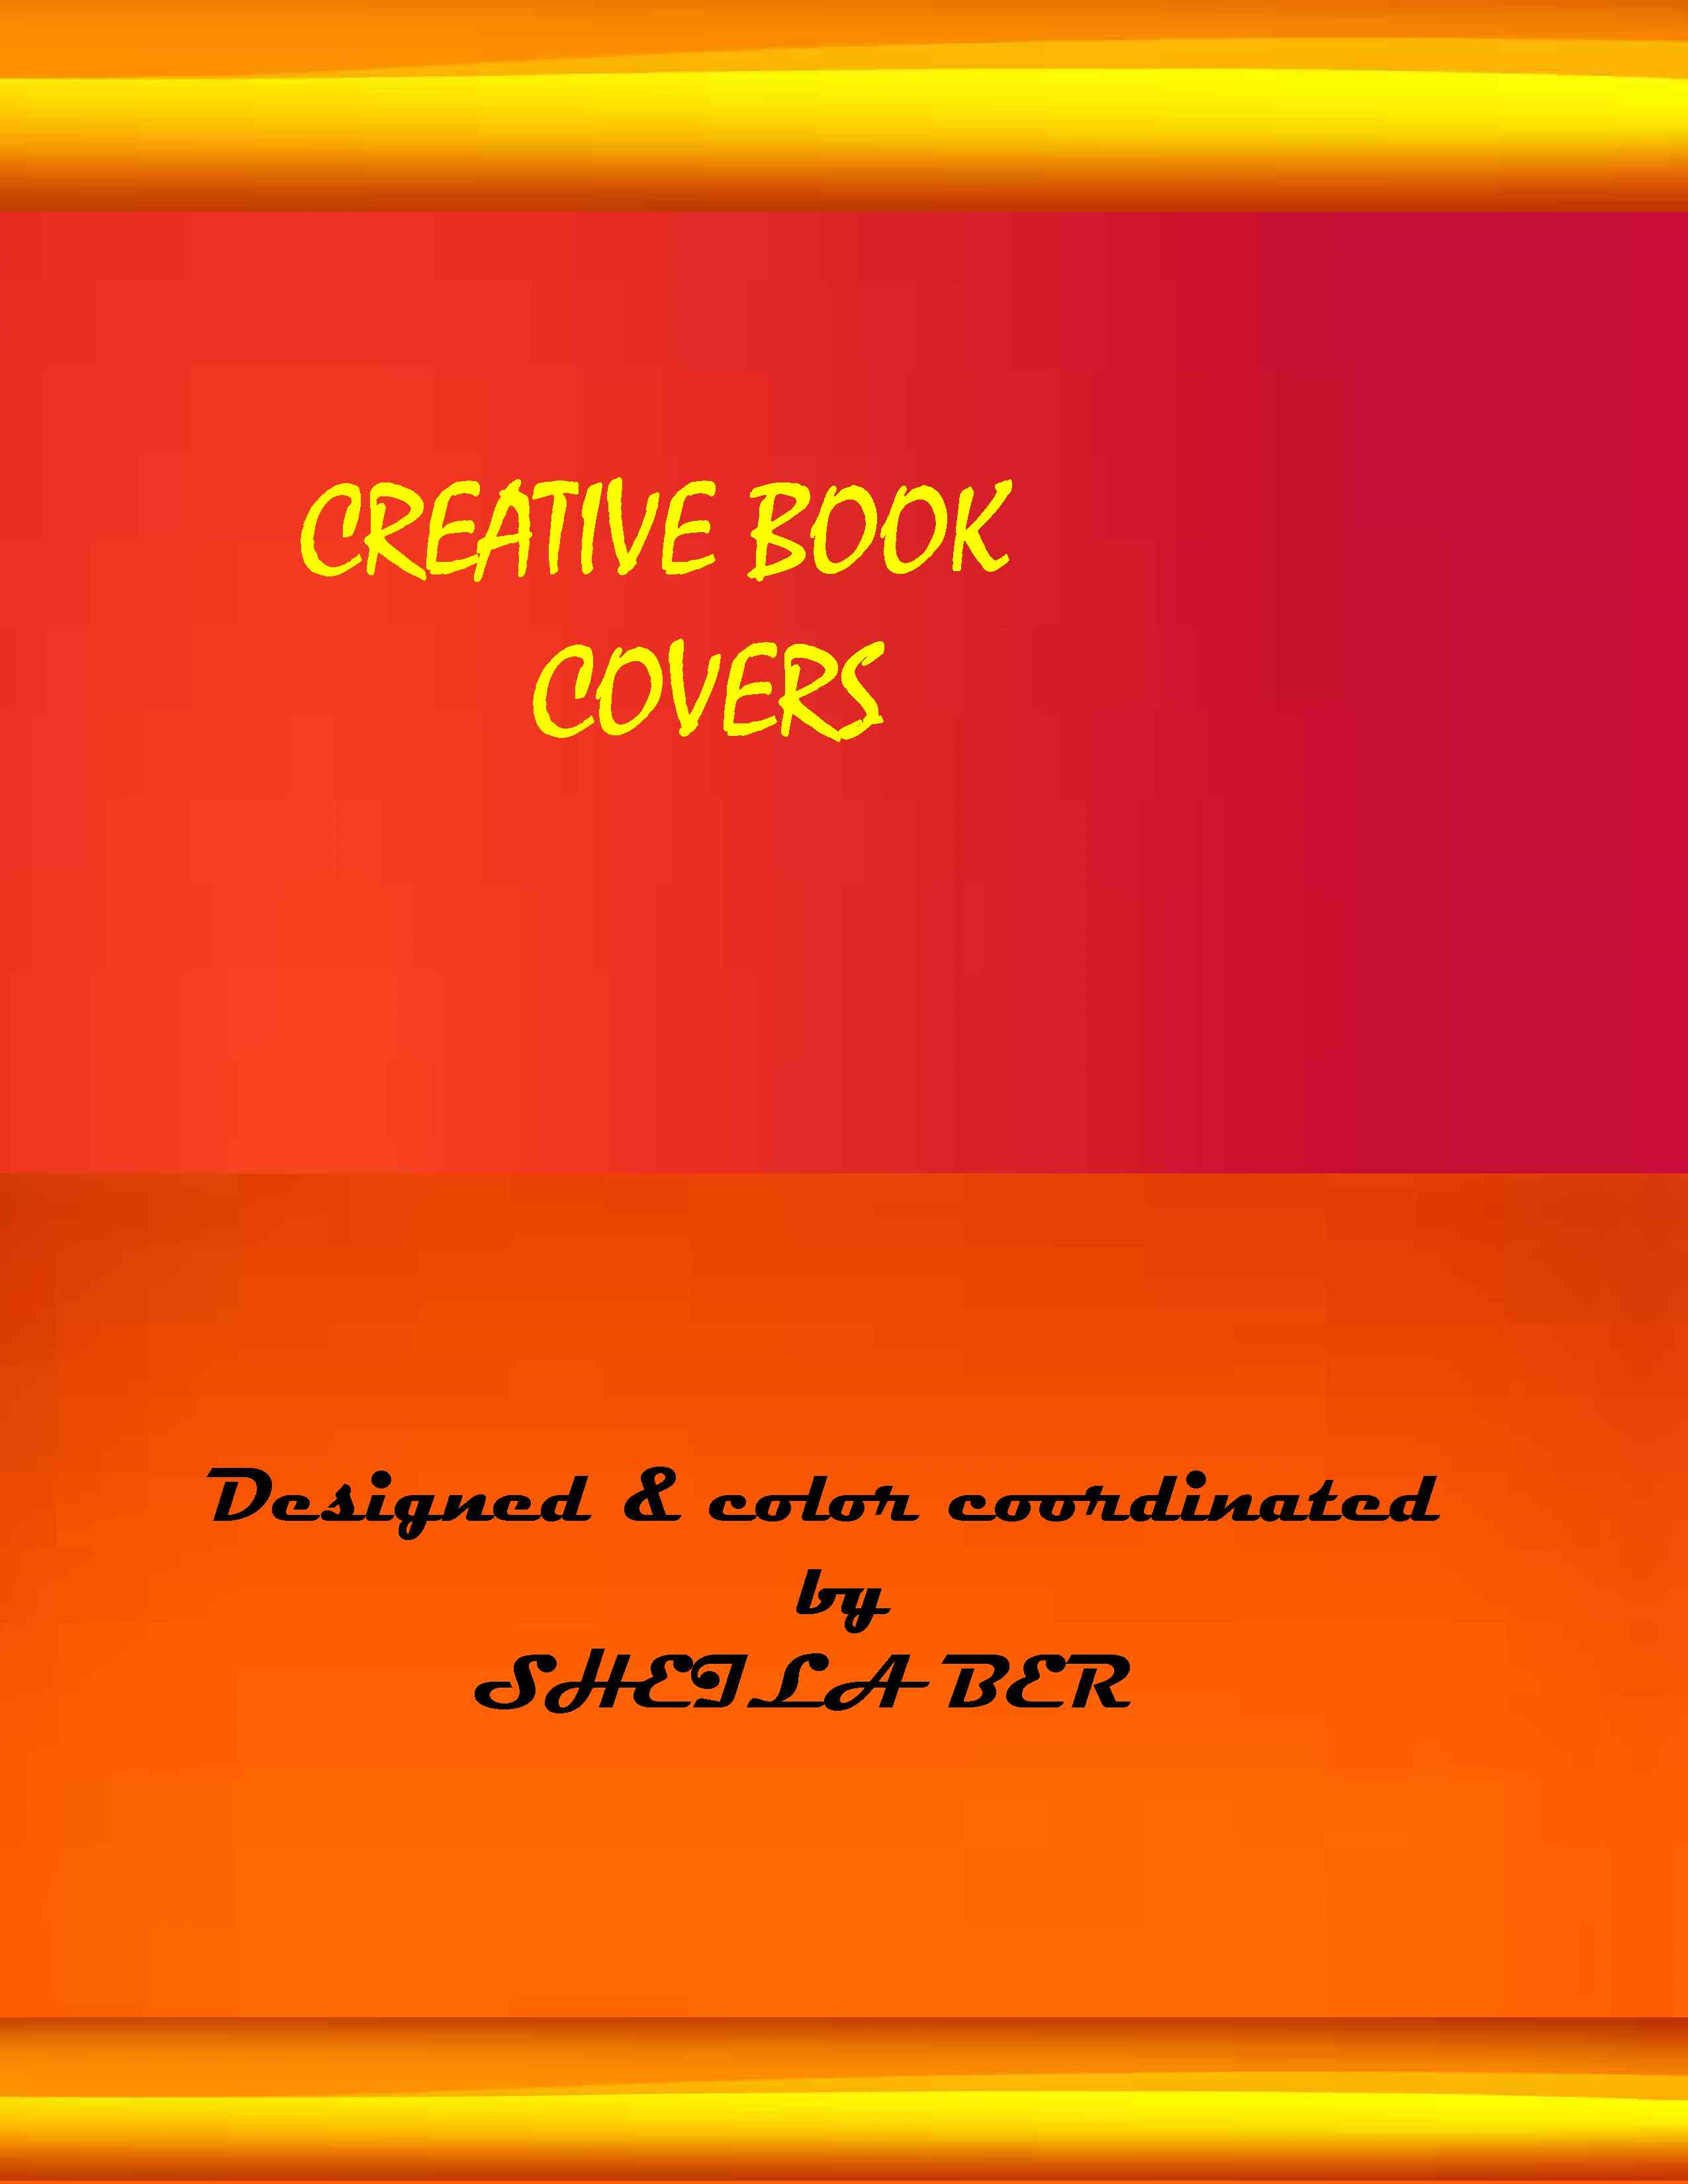 CREATIVE BOOK COVERS - Designed & color coordinated  by Sheila Ber.